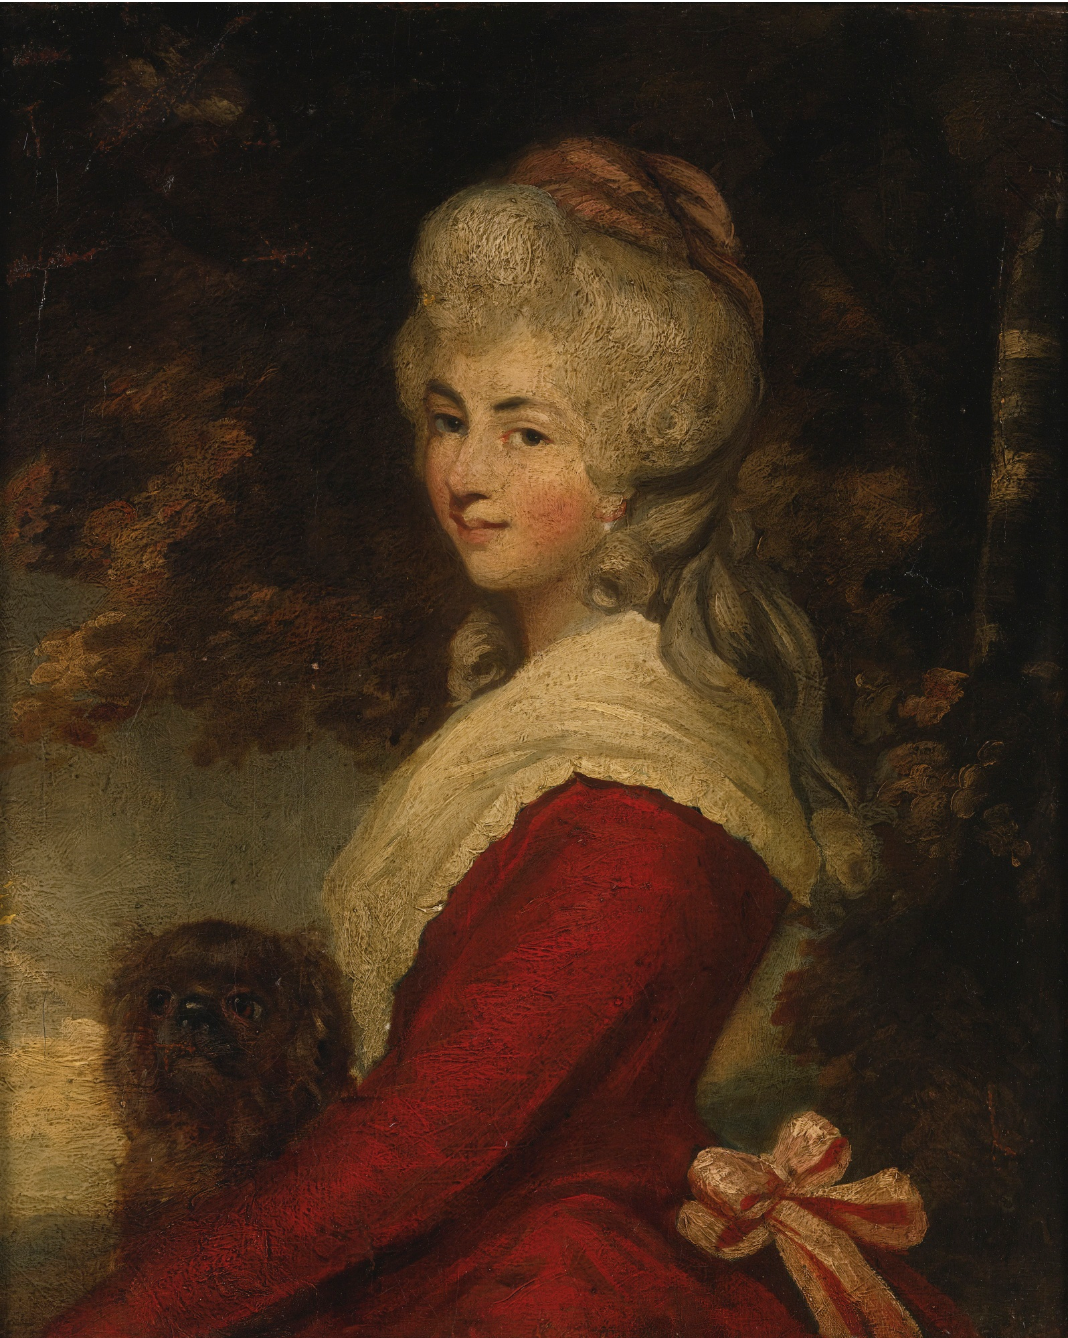 (Reynolds, joshua, sir, p.r.a. por ||| figure ||| sotheby's n09103lot6yx8ven PORTRAIT OF A LADY, SAID TO BE LADY CARLYLE